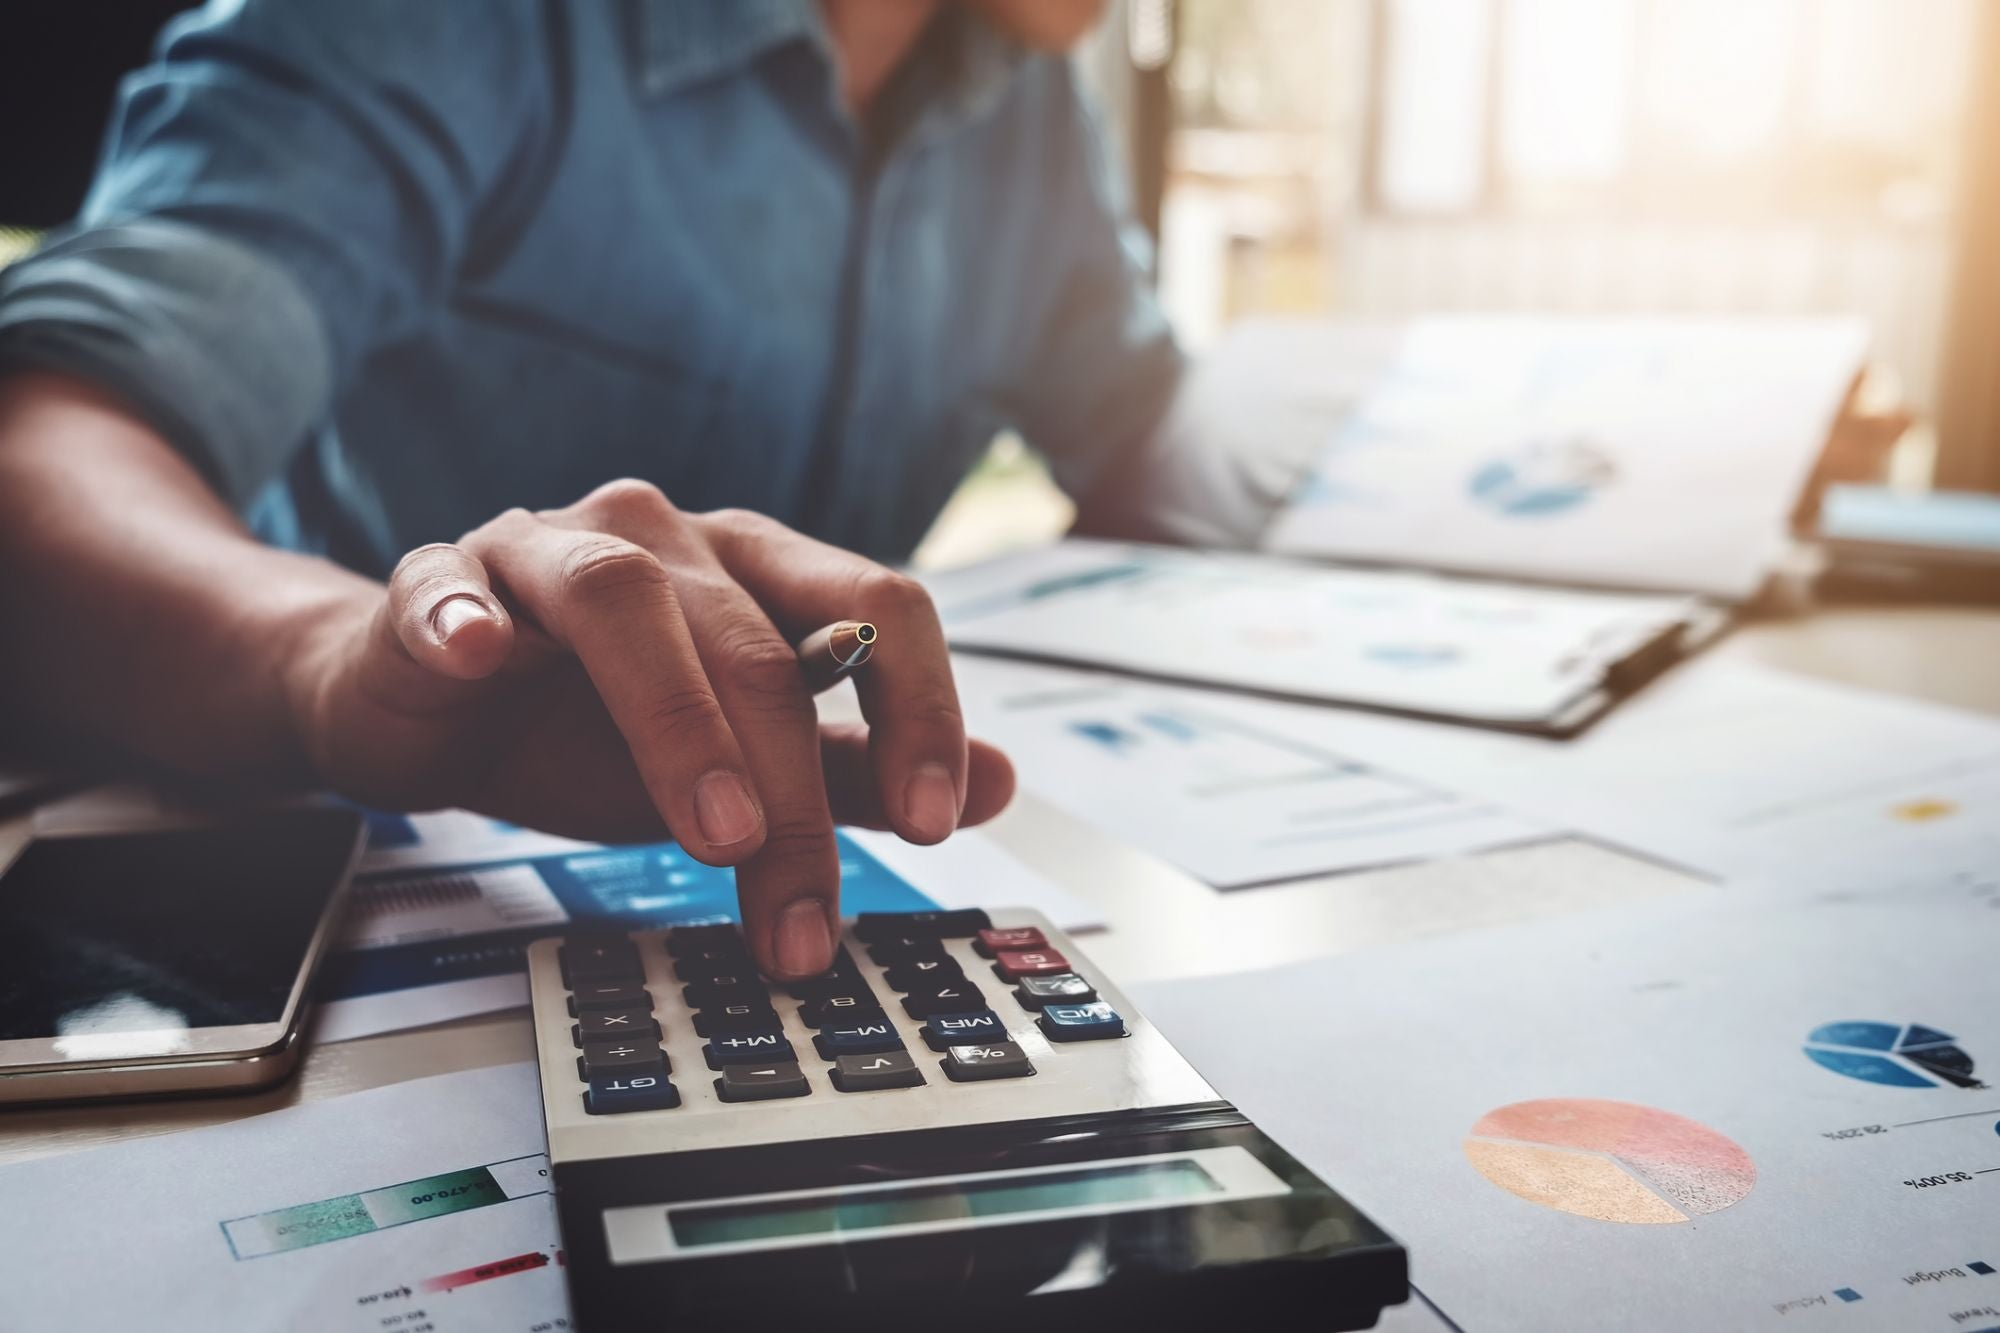 5 Tips for Securing the Business Credit You Need to Start and Scale Your Business